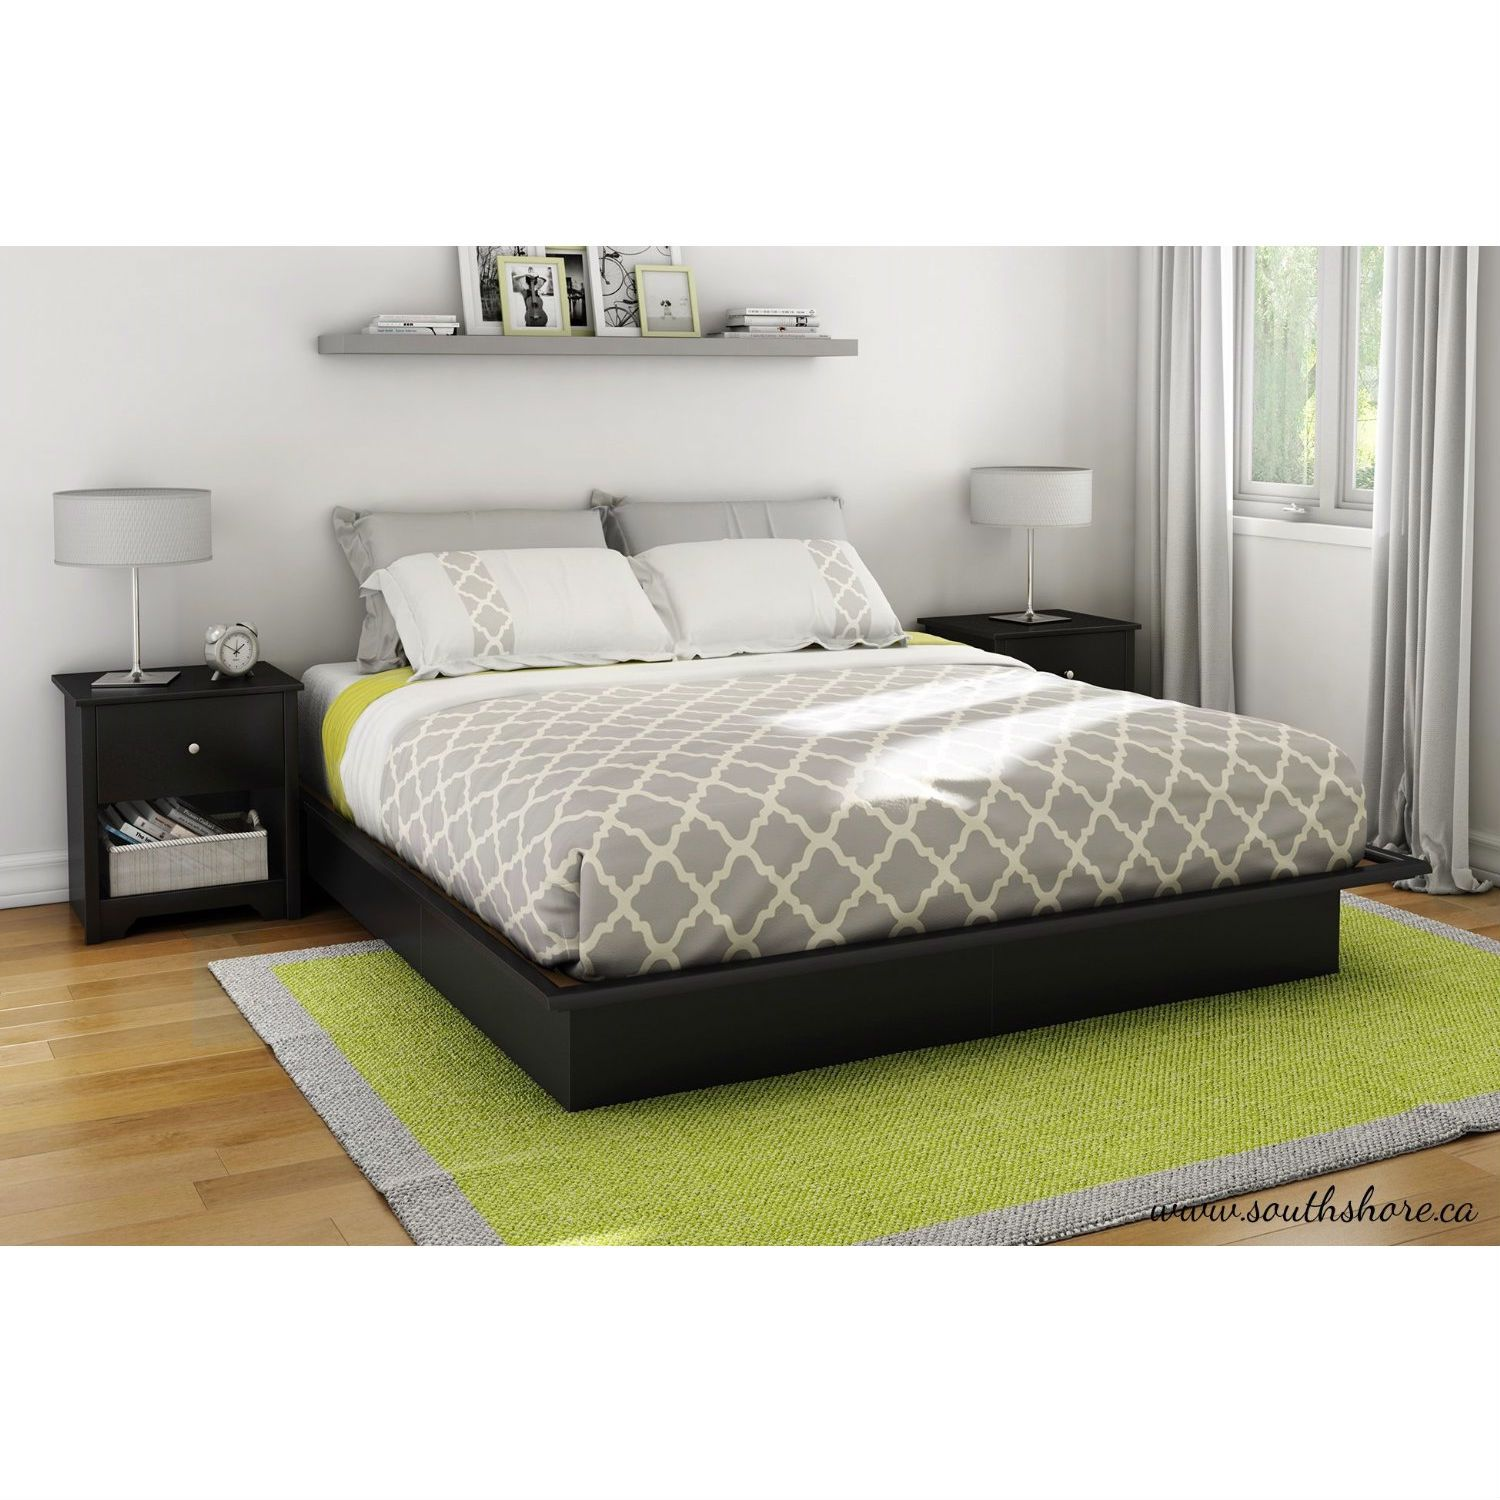 Modern Platform Bed Frame King With Nightstand Set And Green